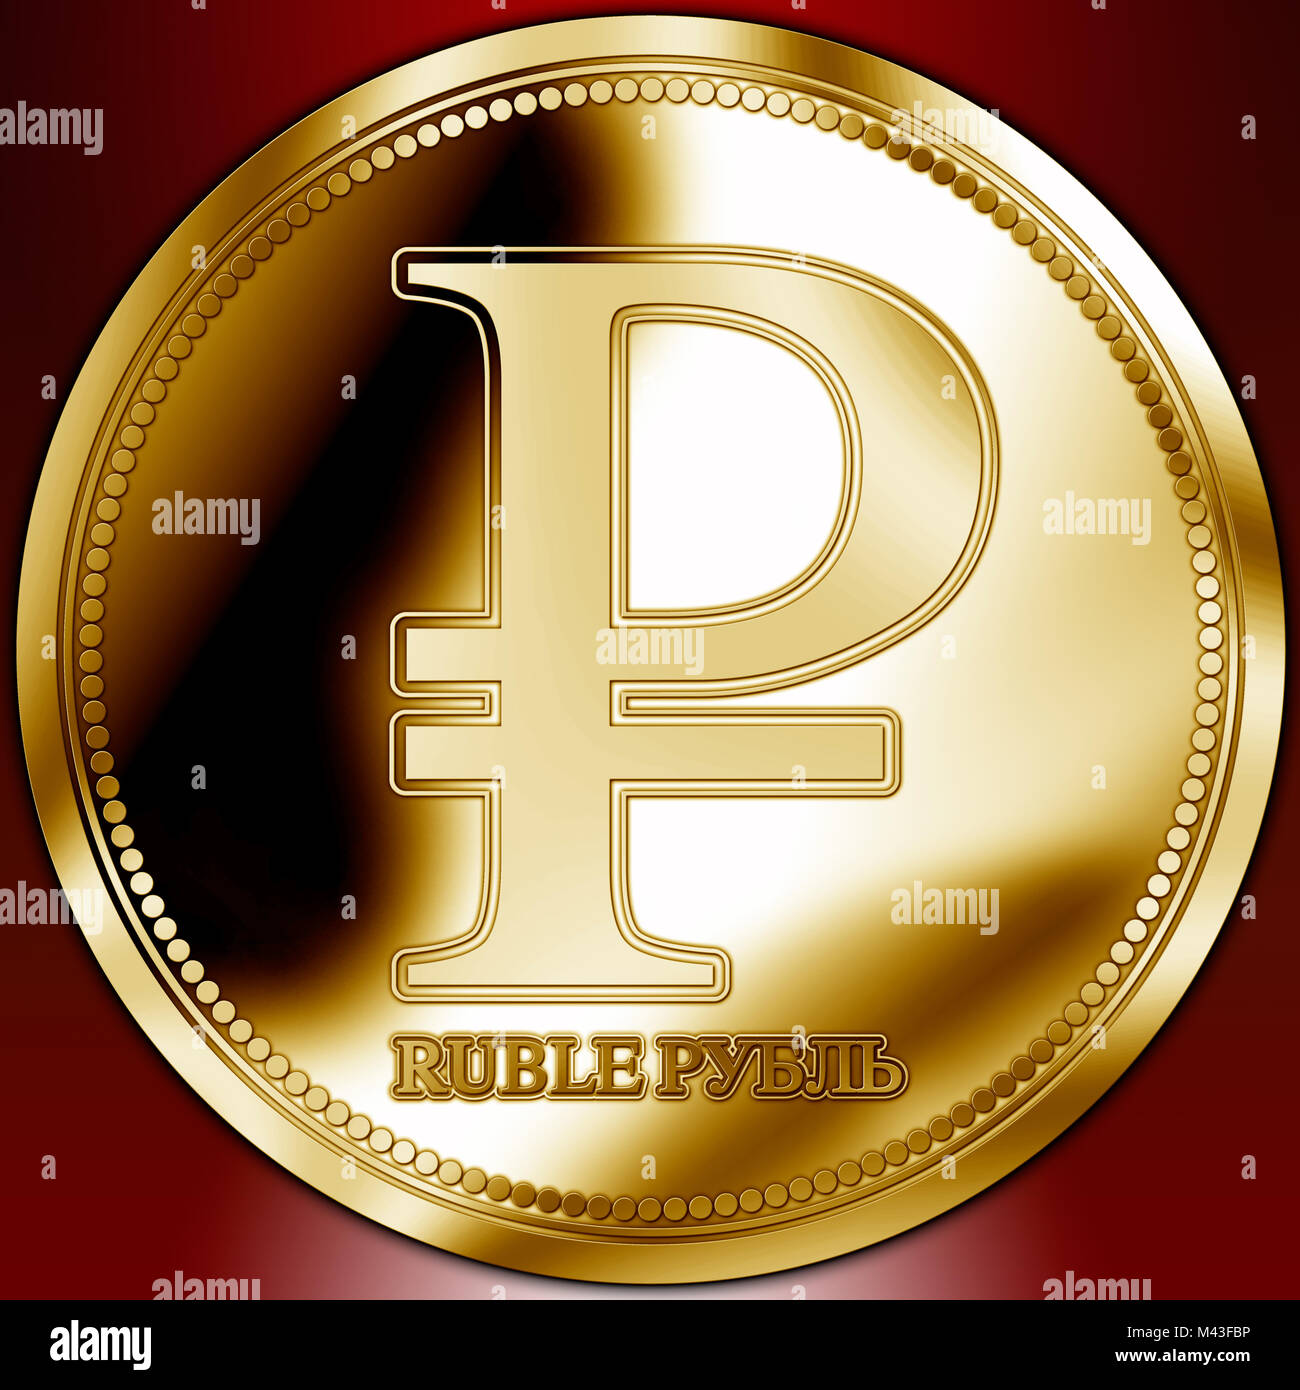 Russian Rouble symbol on the gold coin, Russia Stock Photo